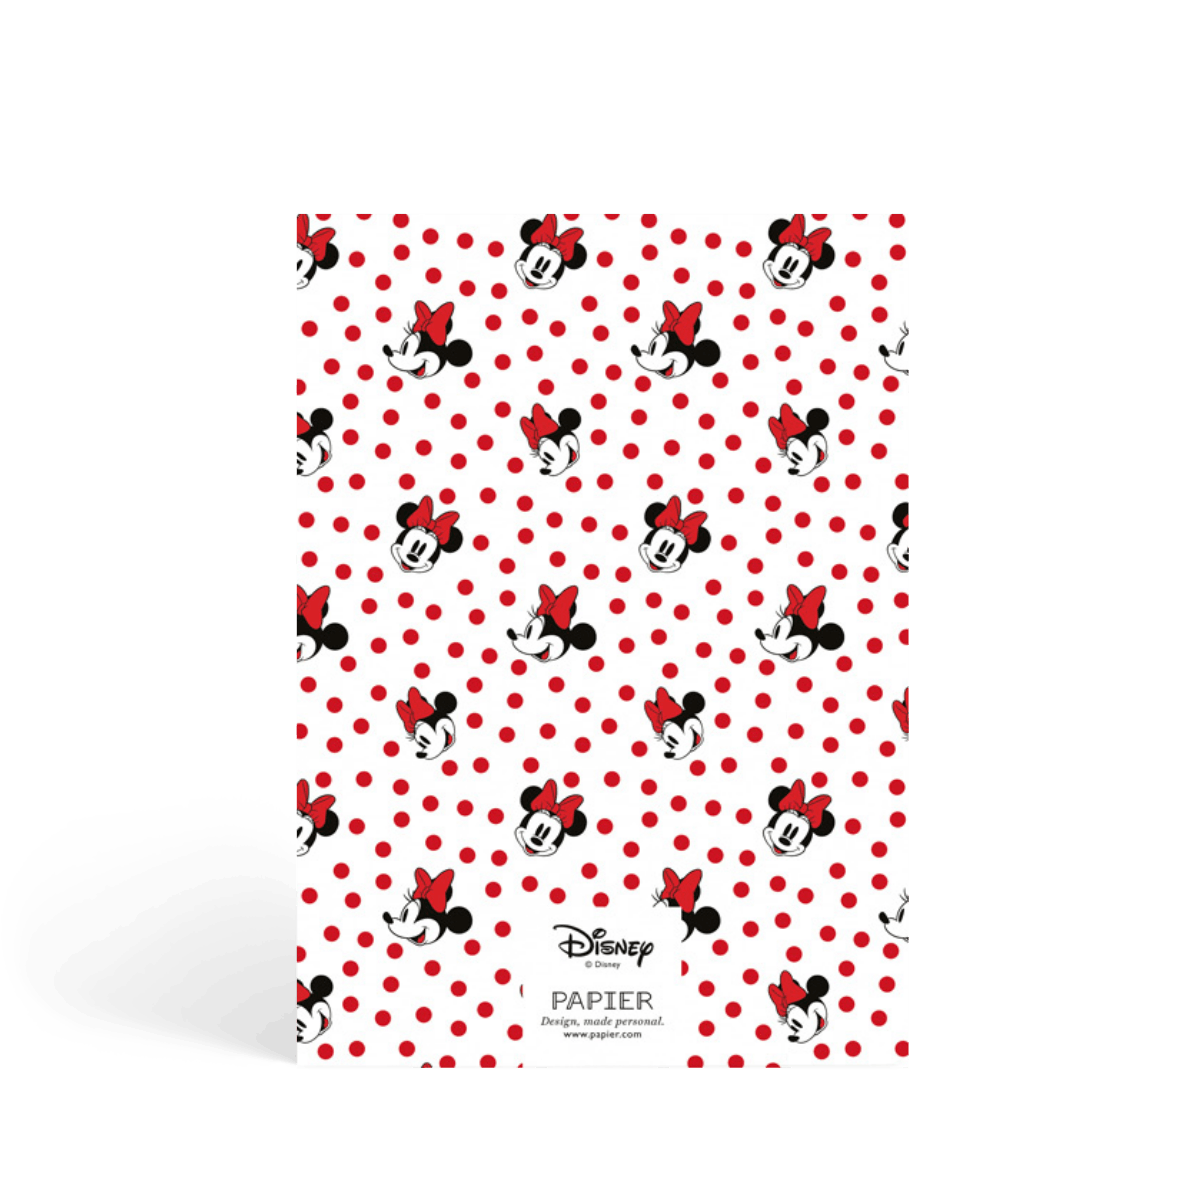 Https%3a%2f%2fwww.papier.com%2fproduct image%2f59147%2f5%2fminnie mouse 14105 back 1543317767.png?ixlib=rb 1.1